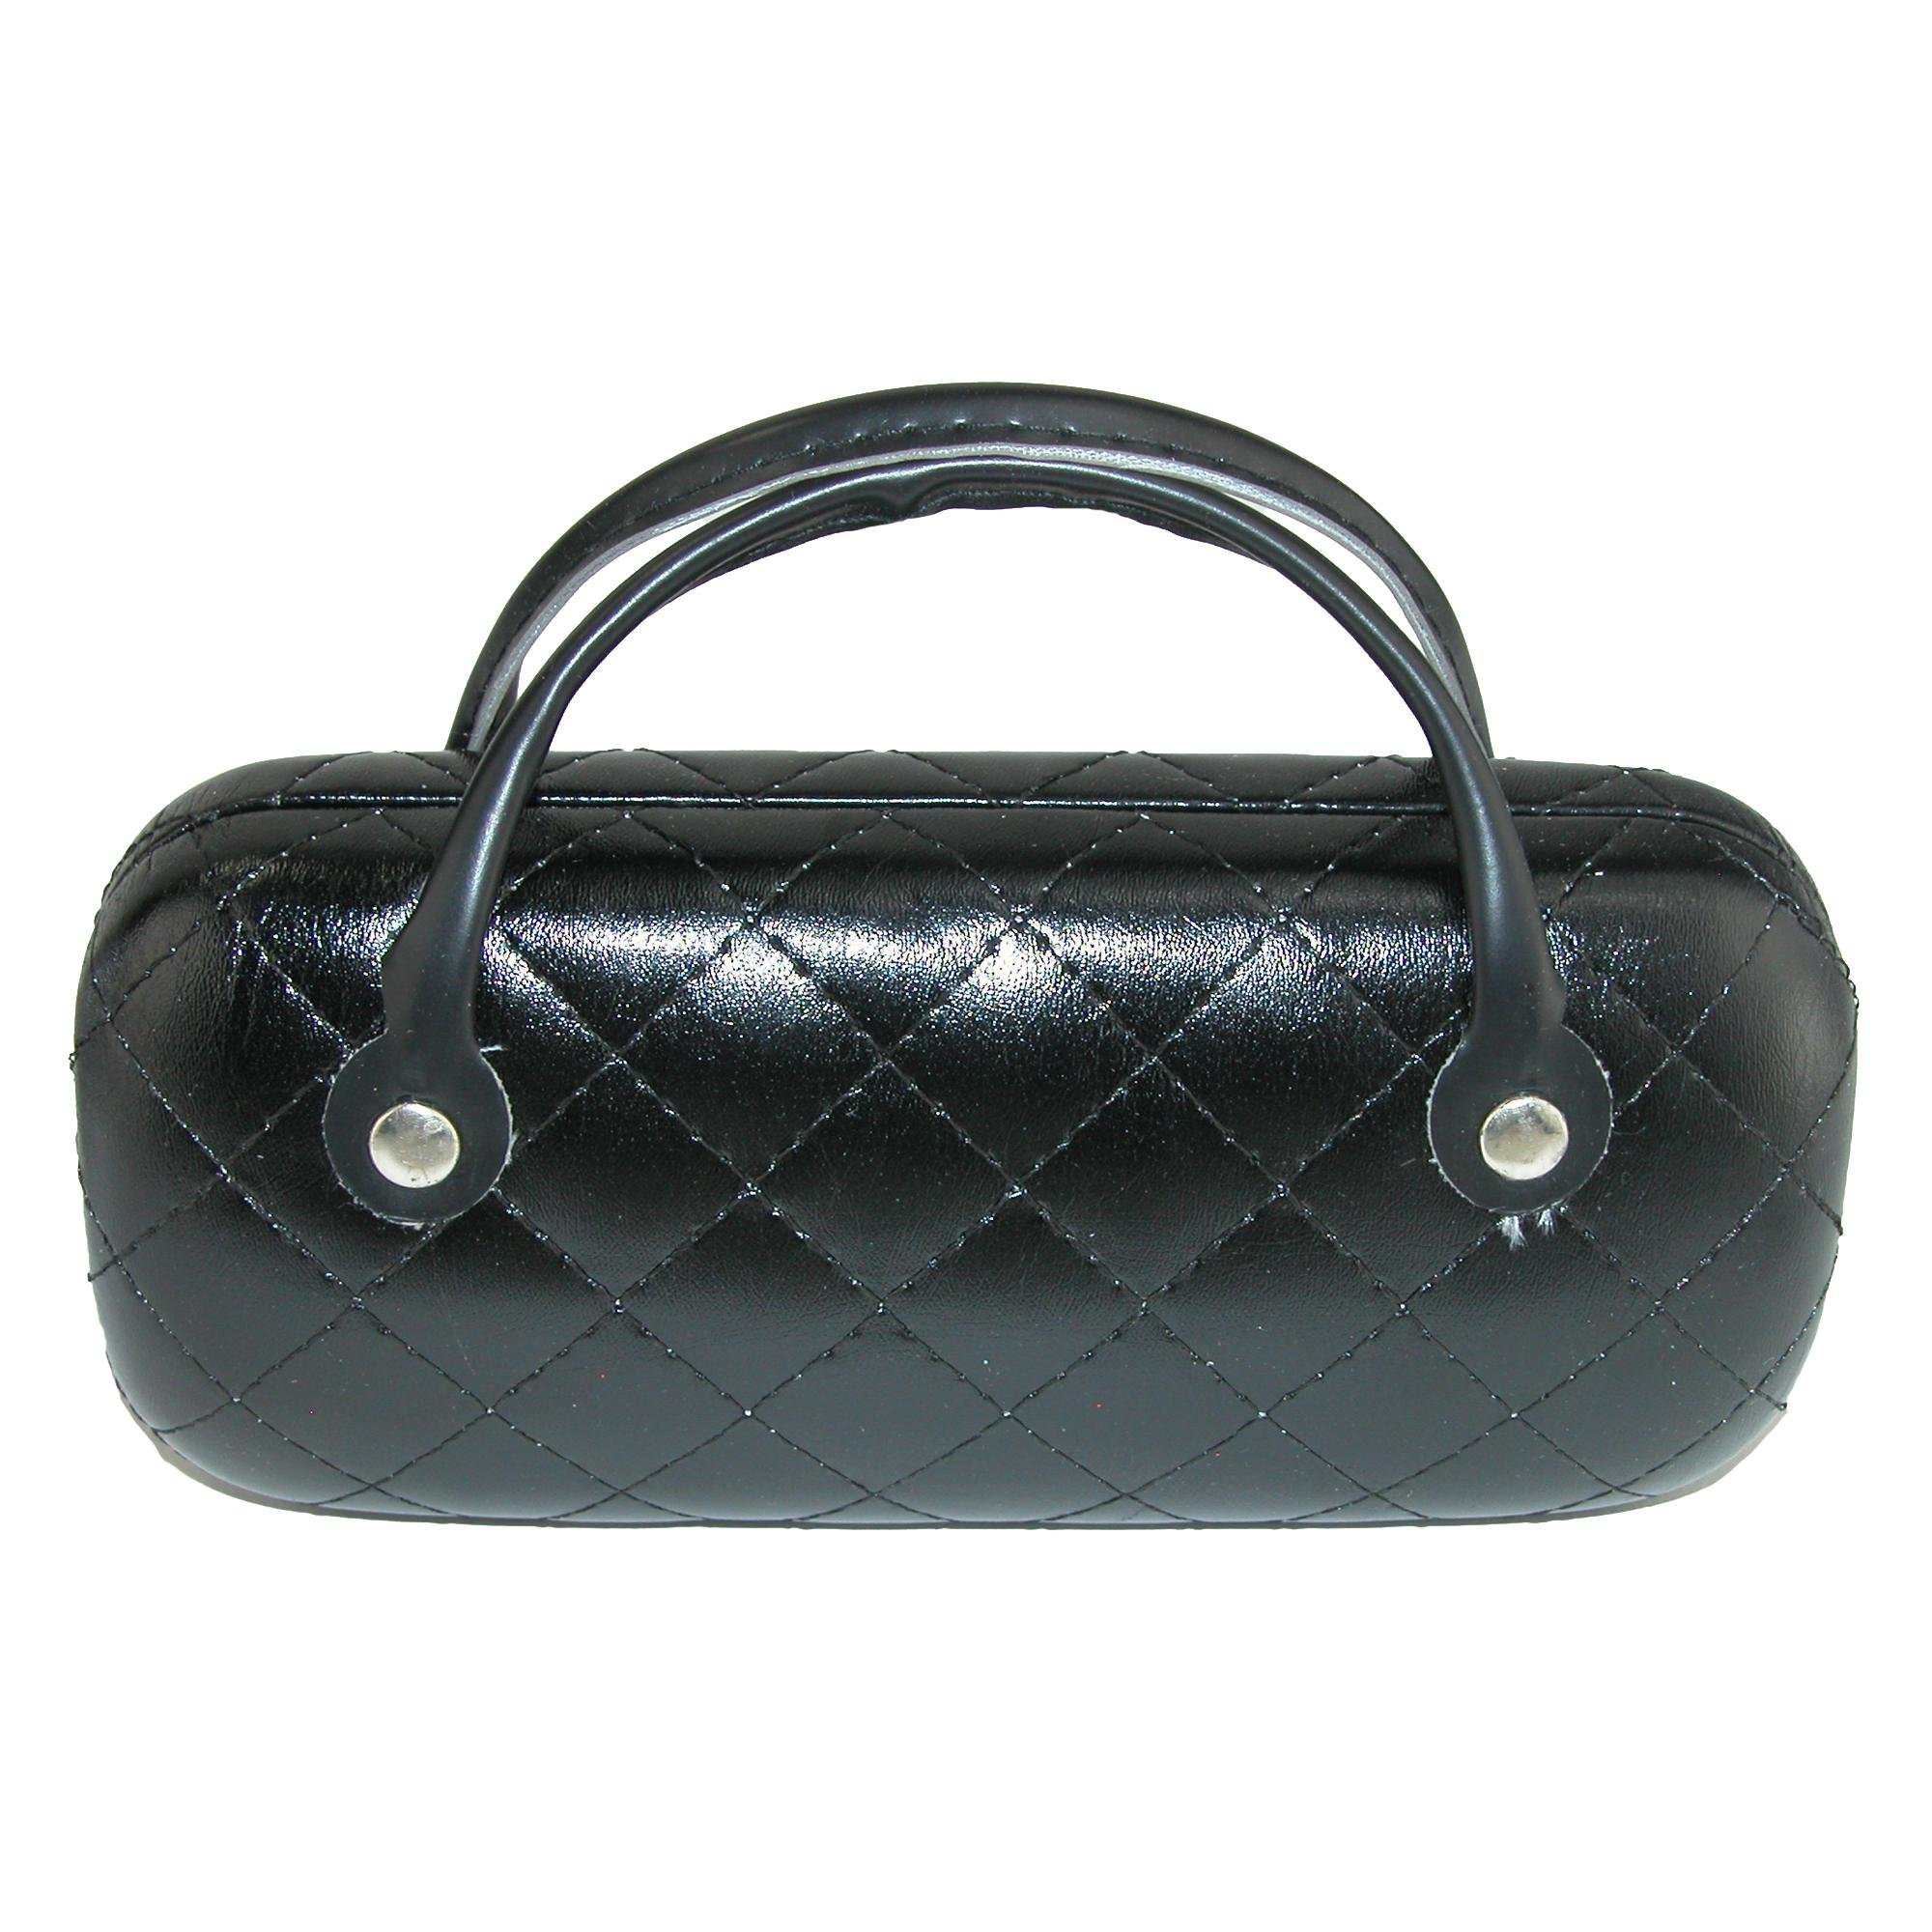 CTM Women's Metallic Quilted Glasses Case with Handle, Black